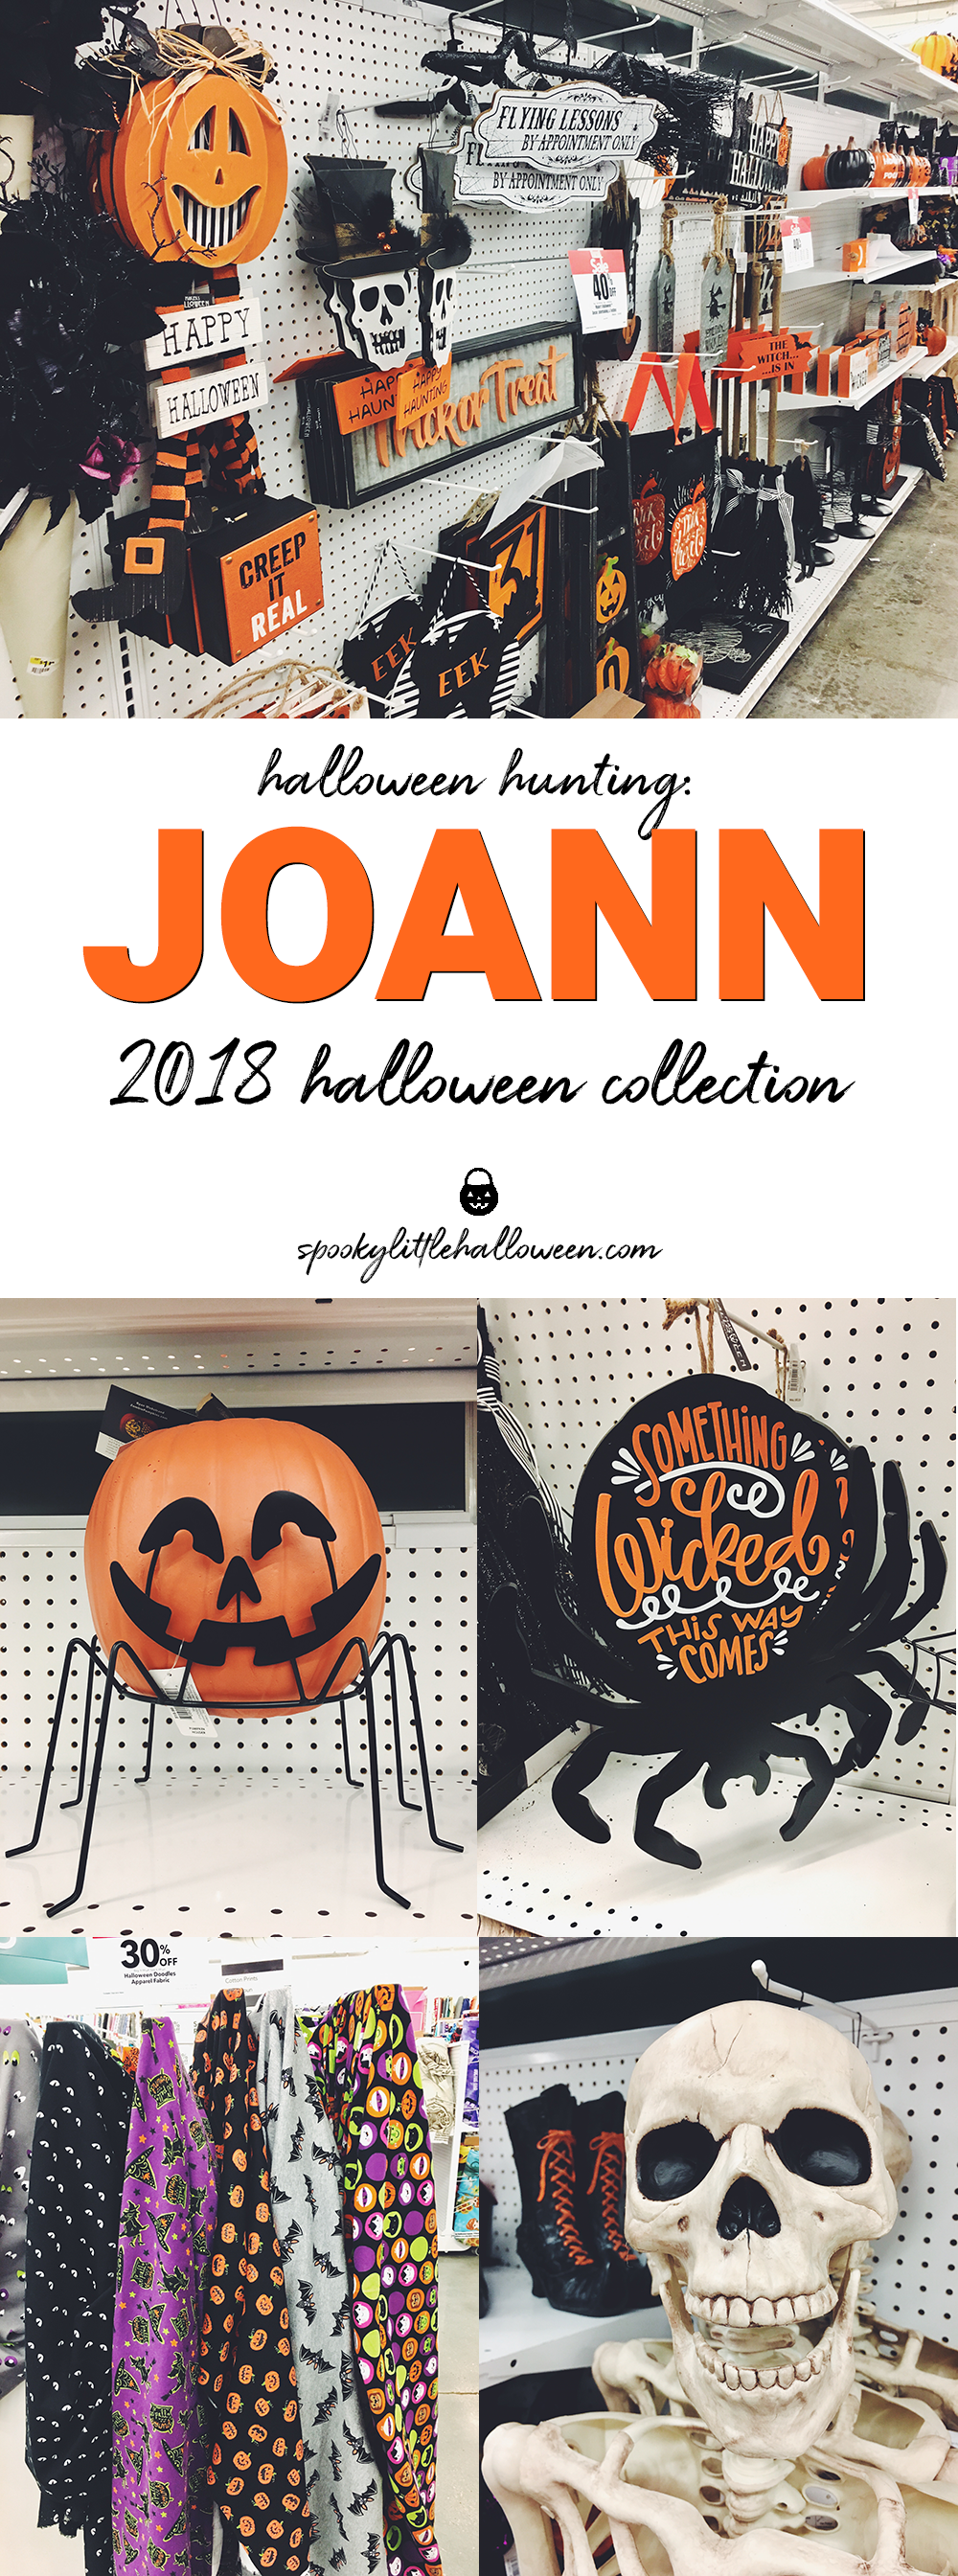 Halloween Hunting: Joann 2018 Halloween Collection - Spooky